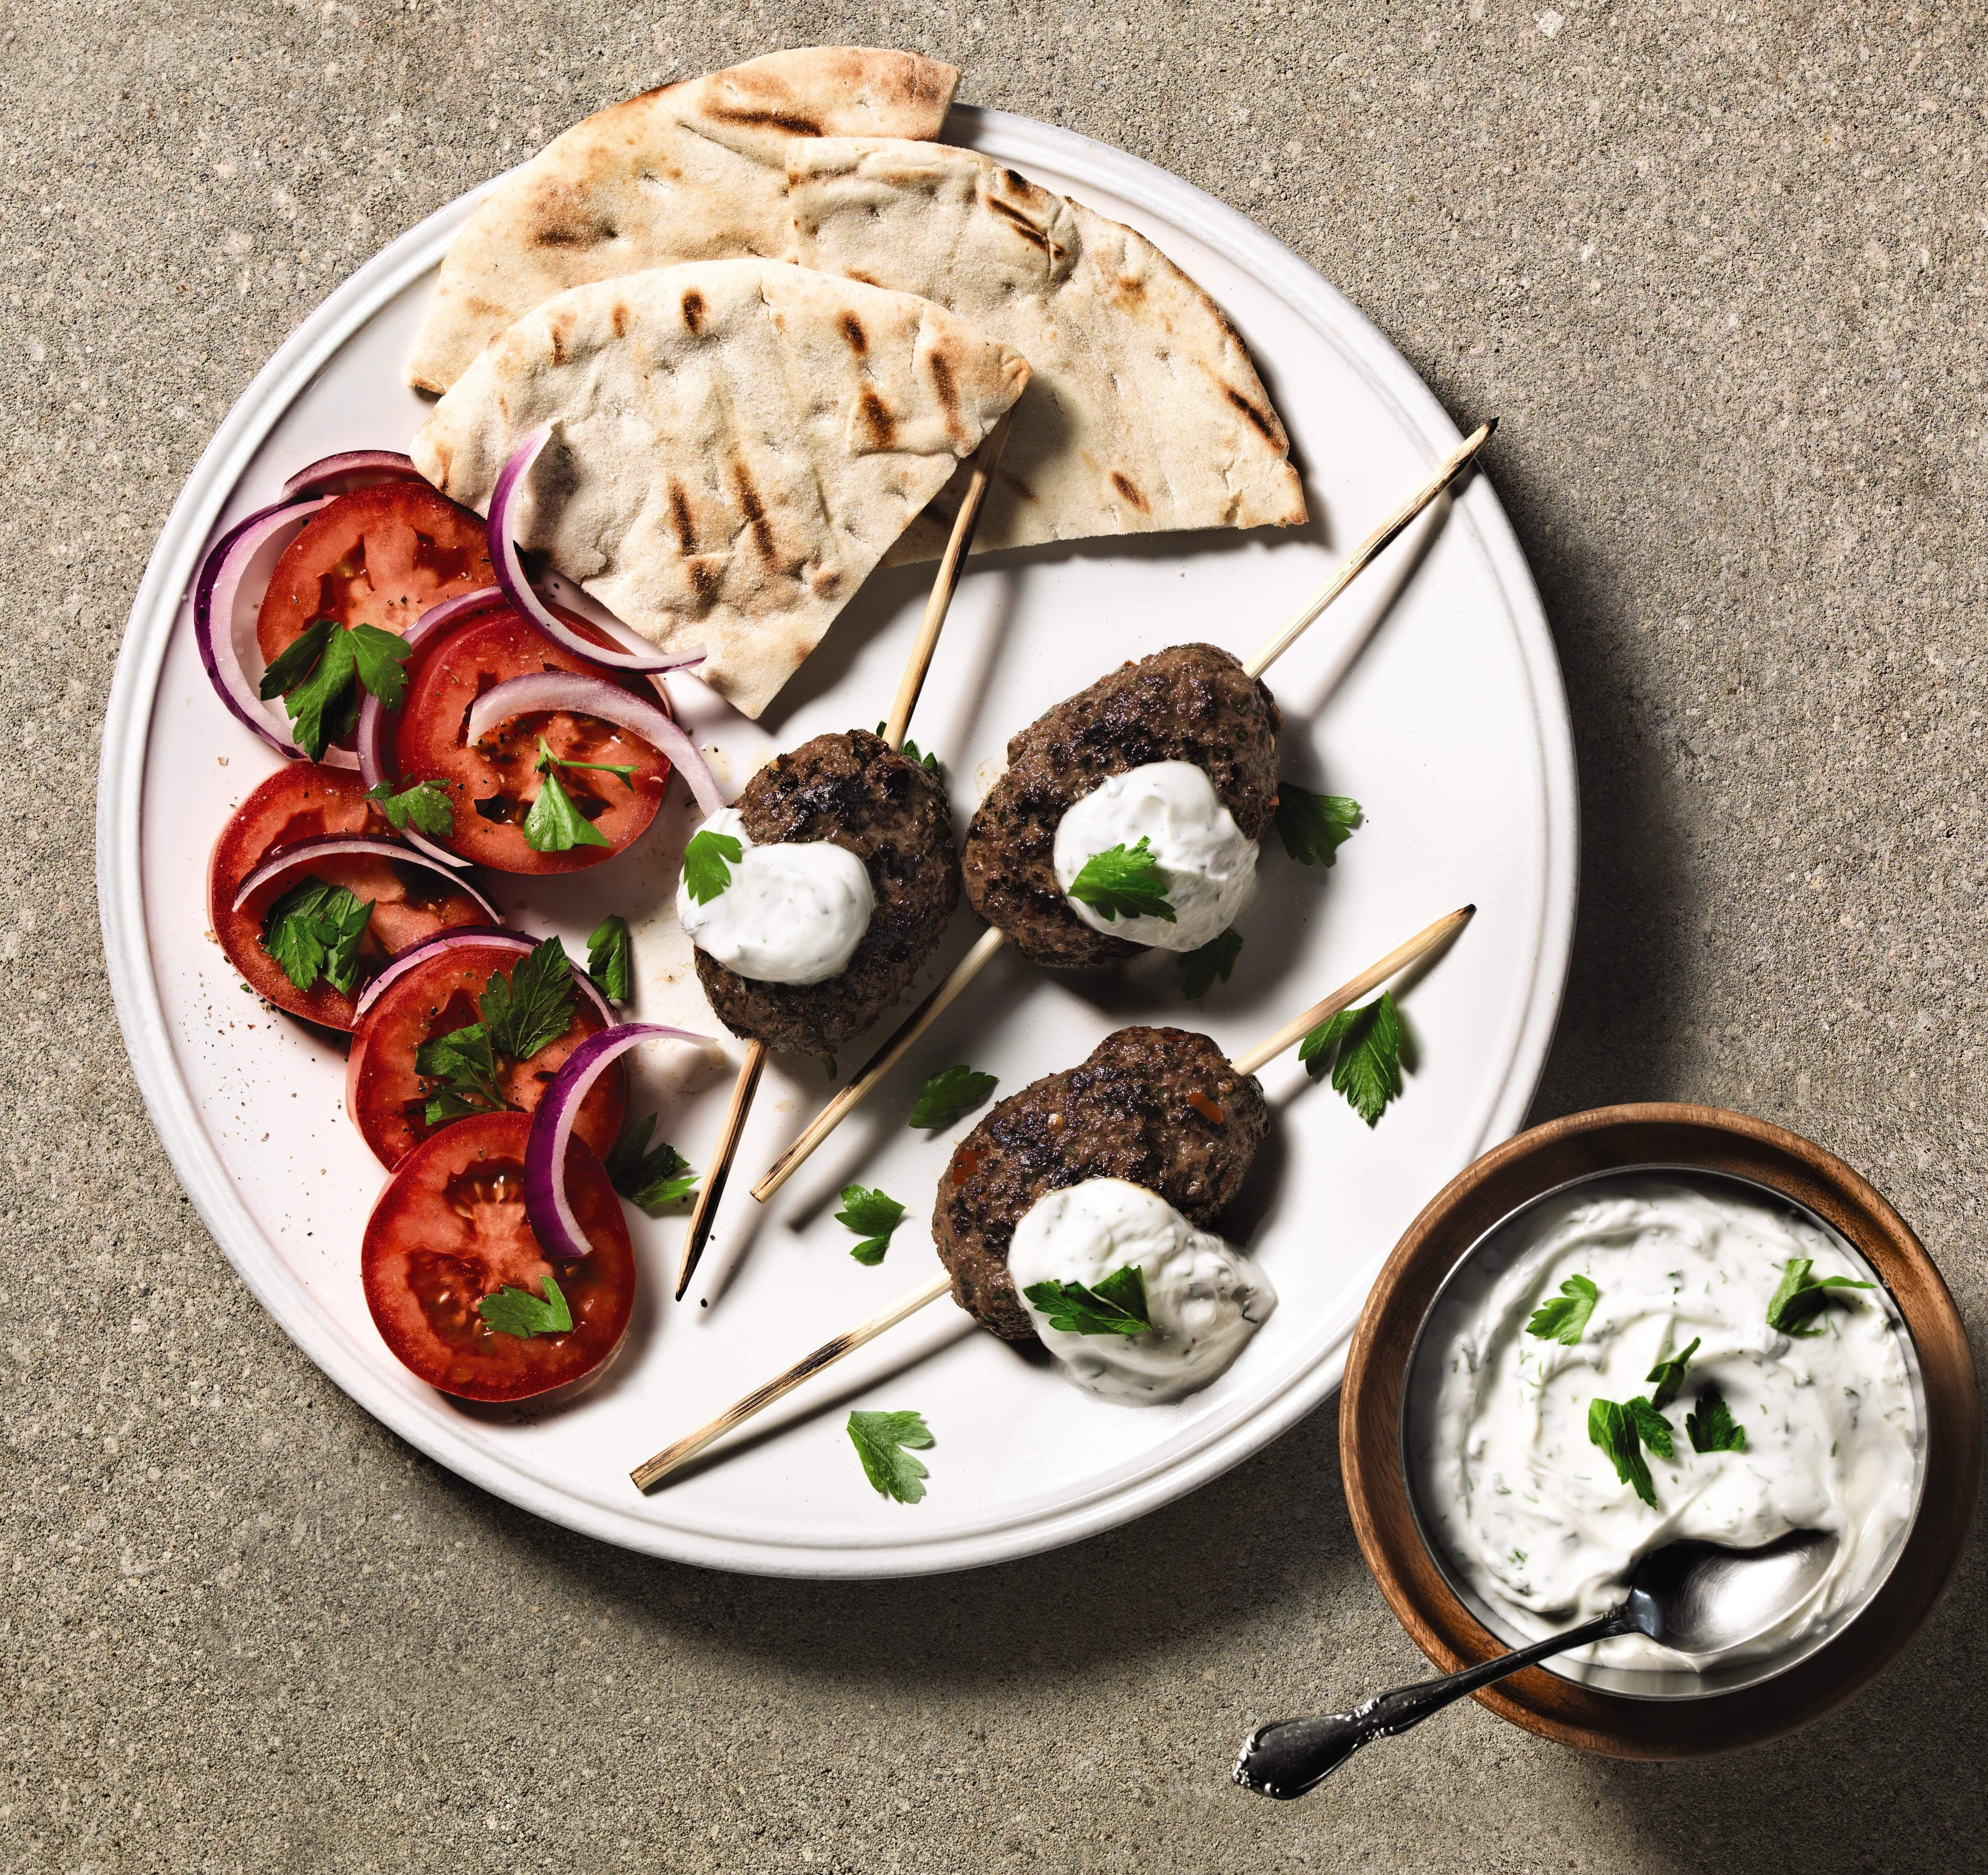 Beef skewers with tzatziki sauce and fresh tomato and onions.